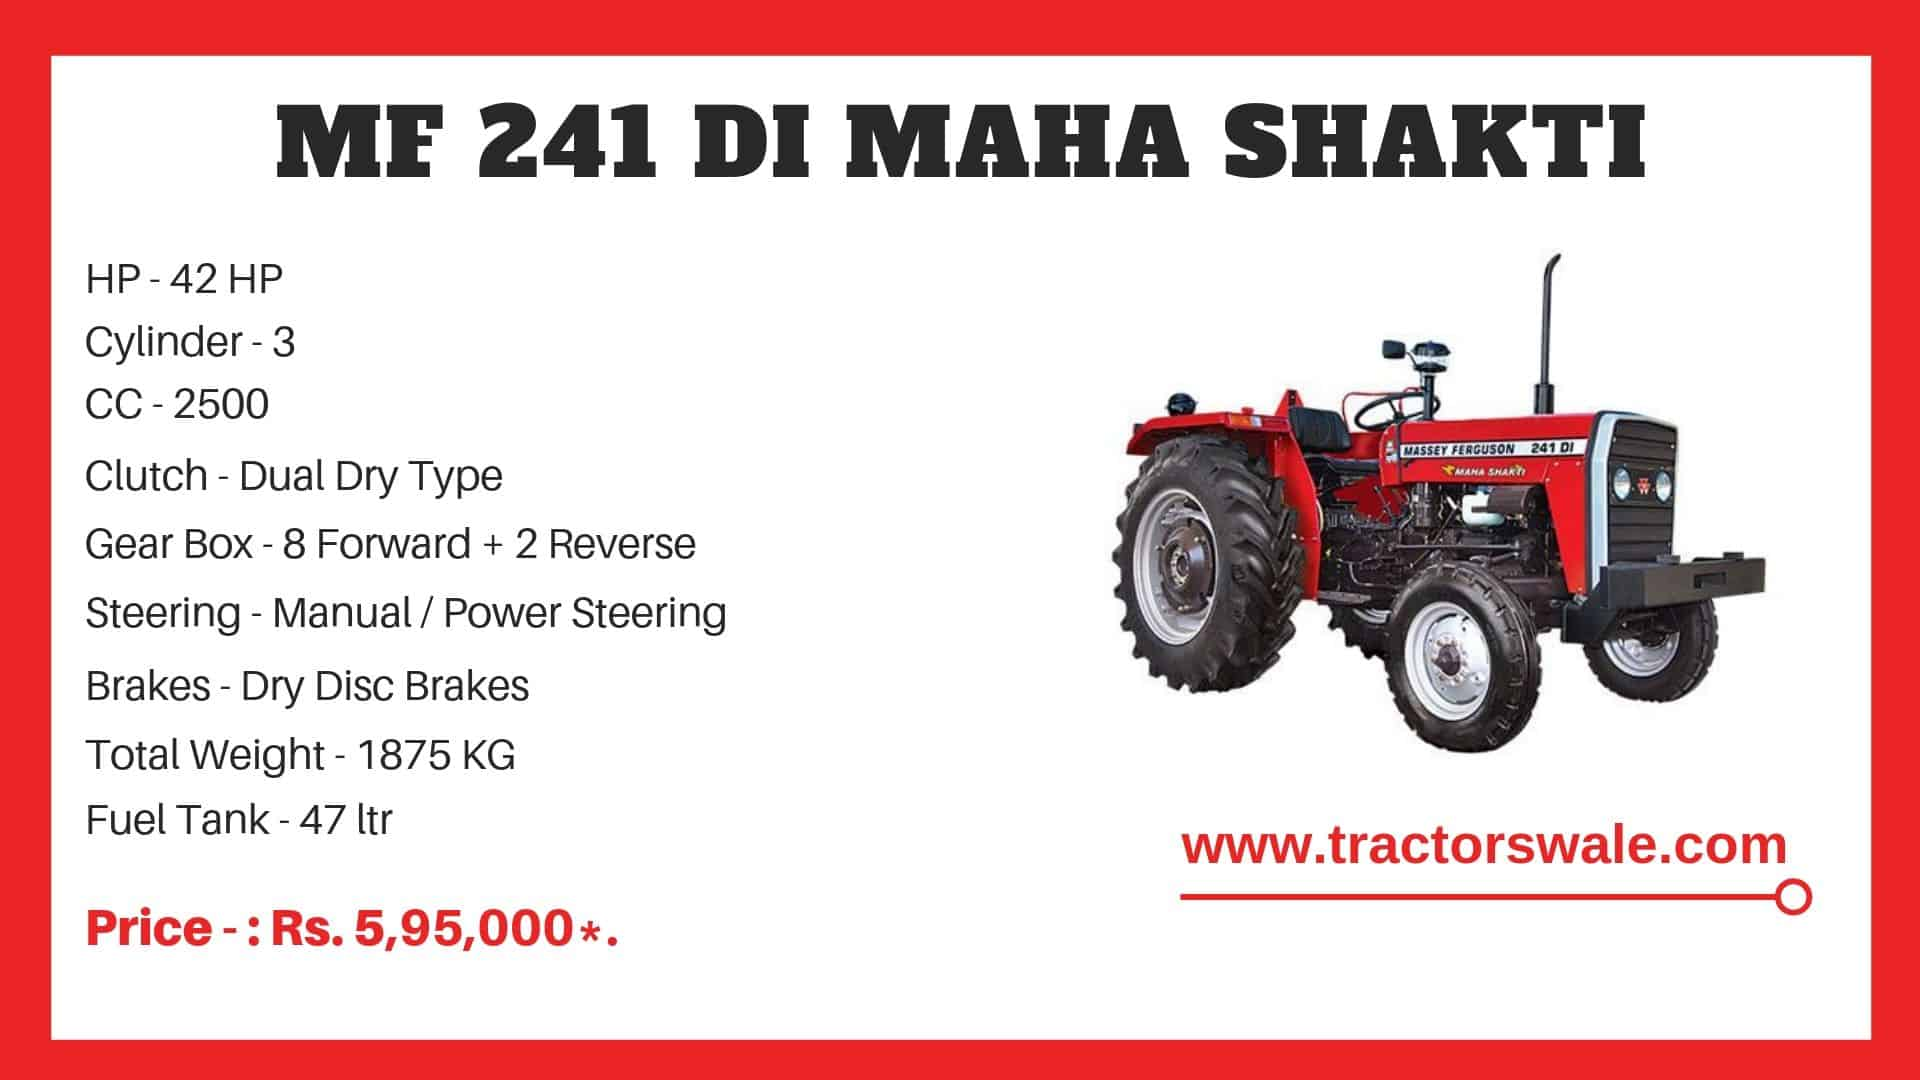 Massey Ferguson 241 DI Specifications